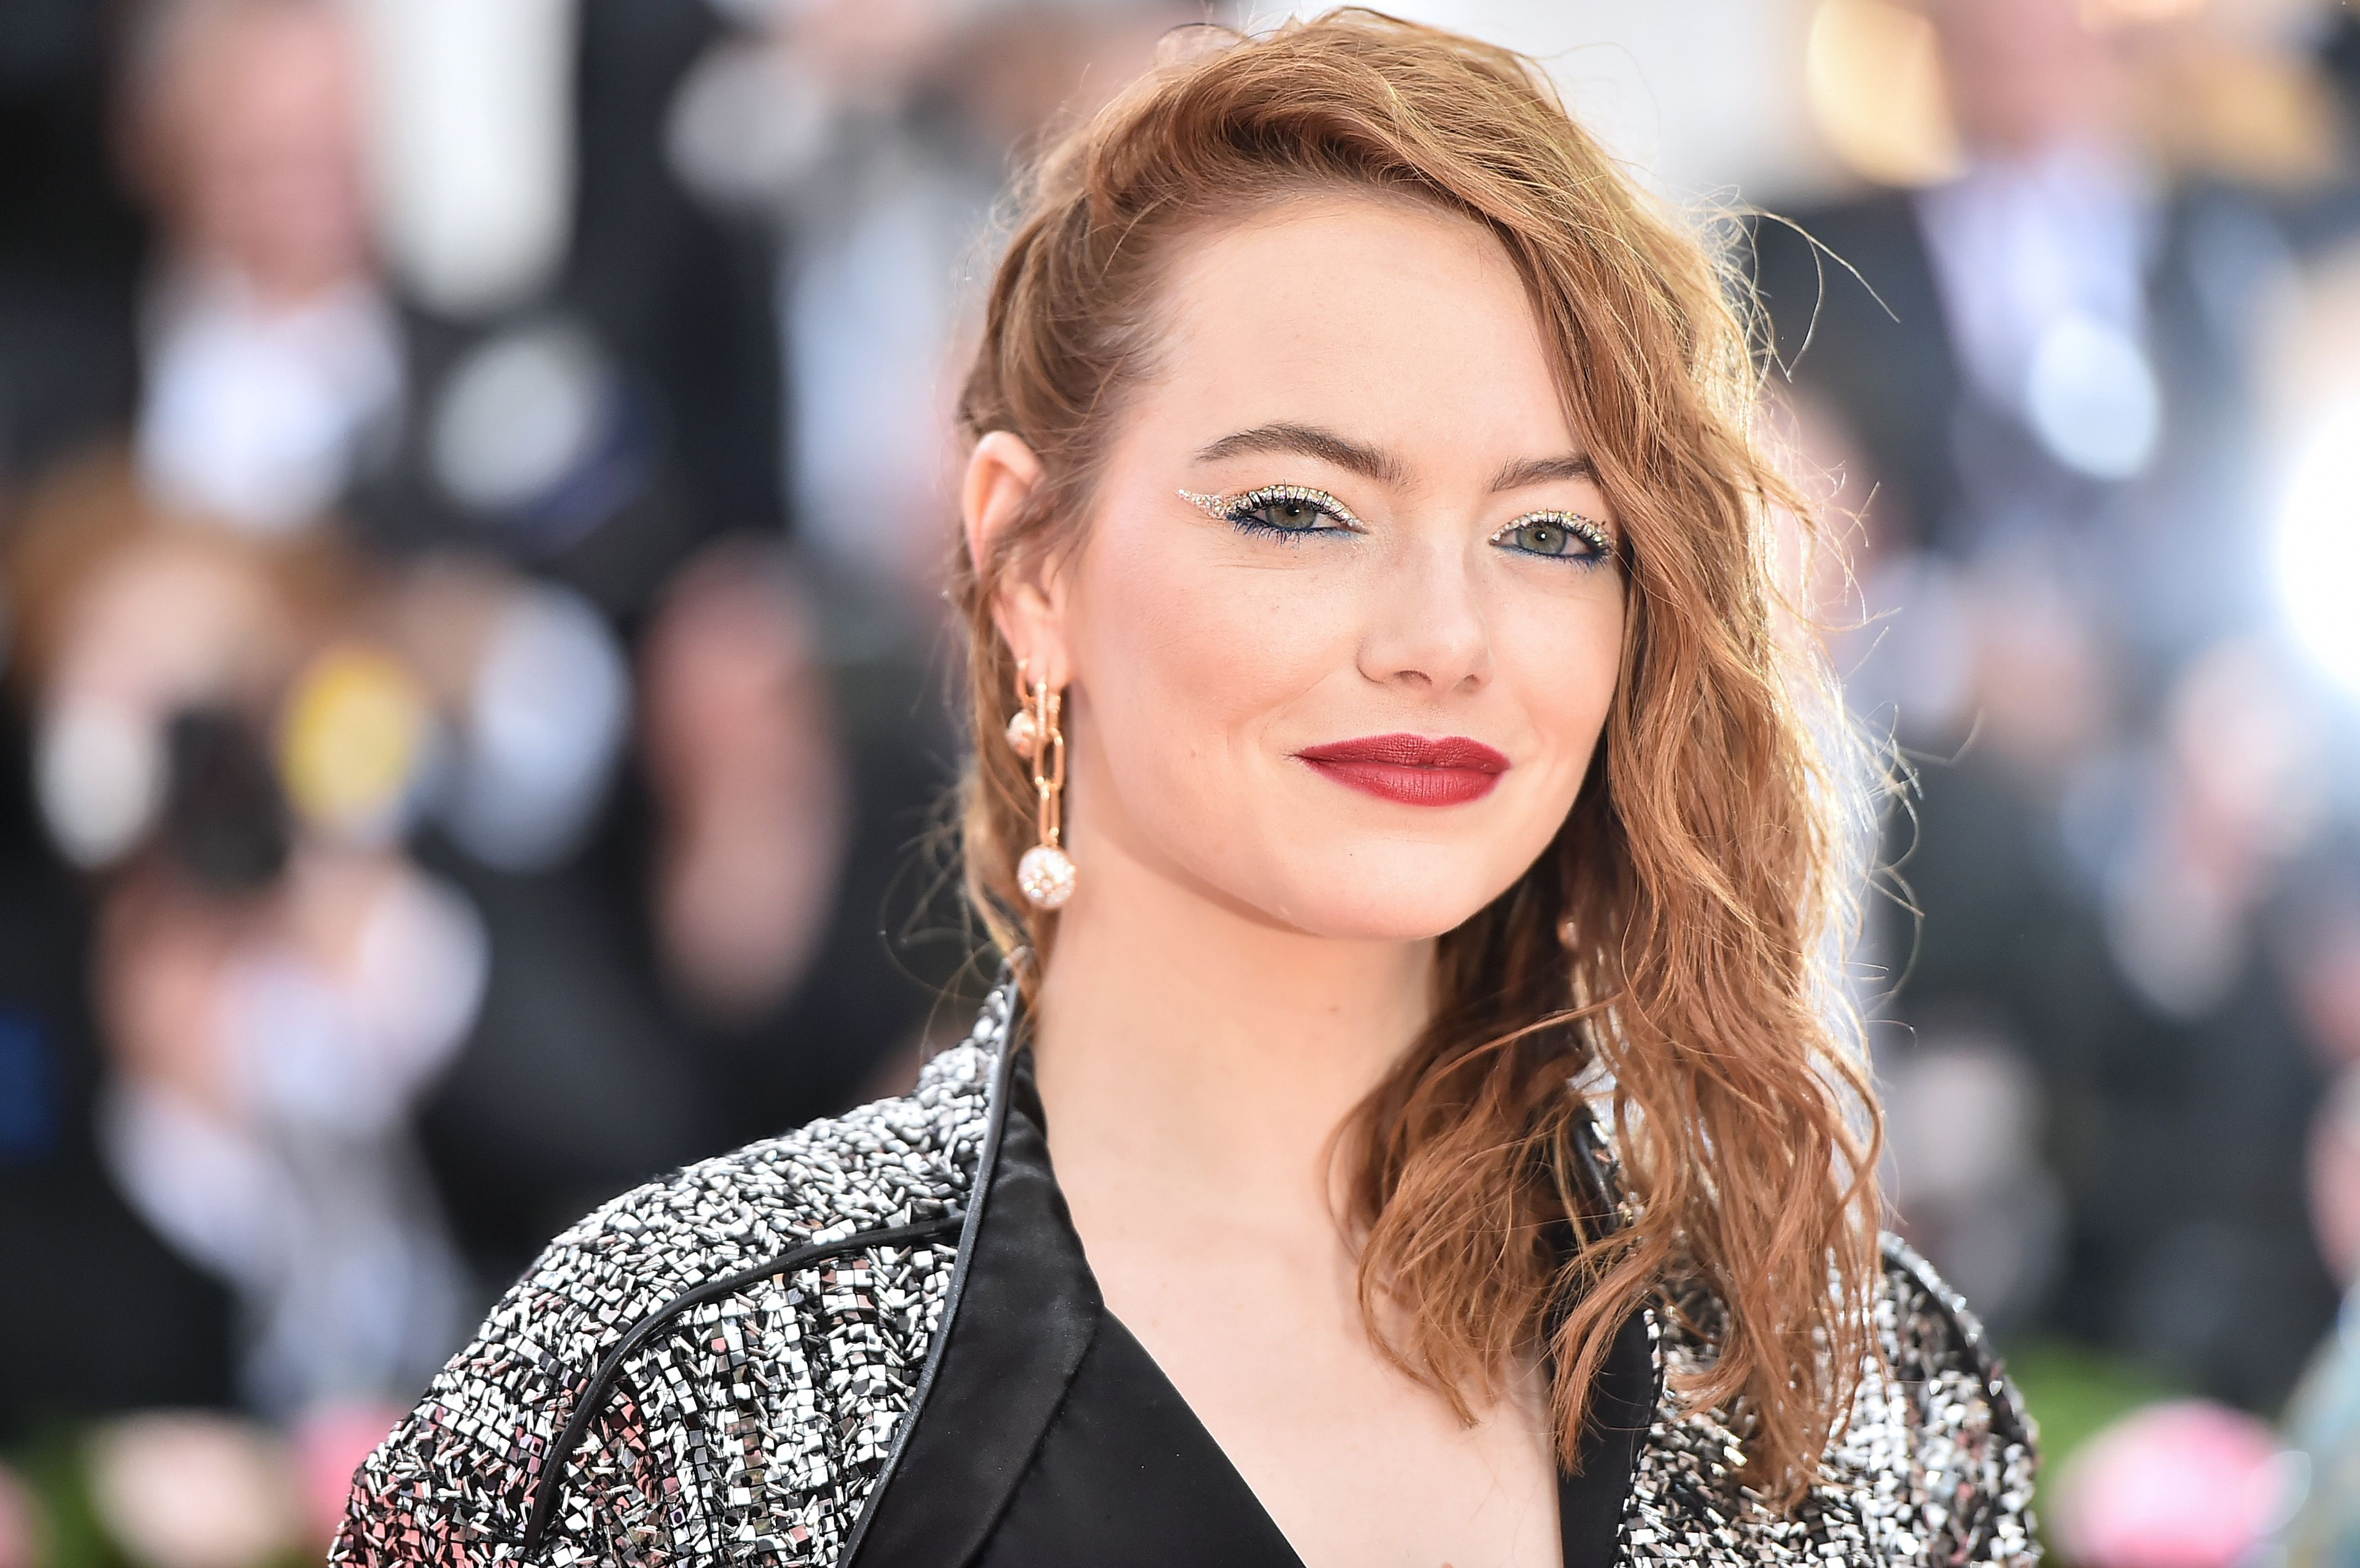 Emma Stone Arrives in the Shiniest Louis Vuitton Jumpsuit to the 2019 Met Gala